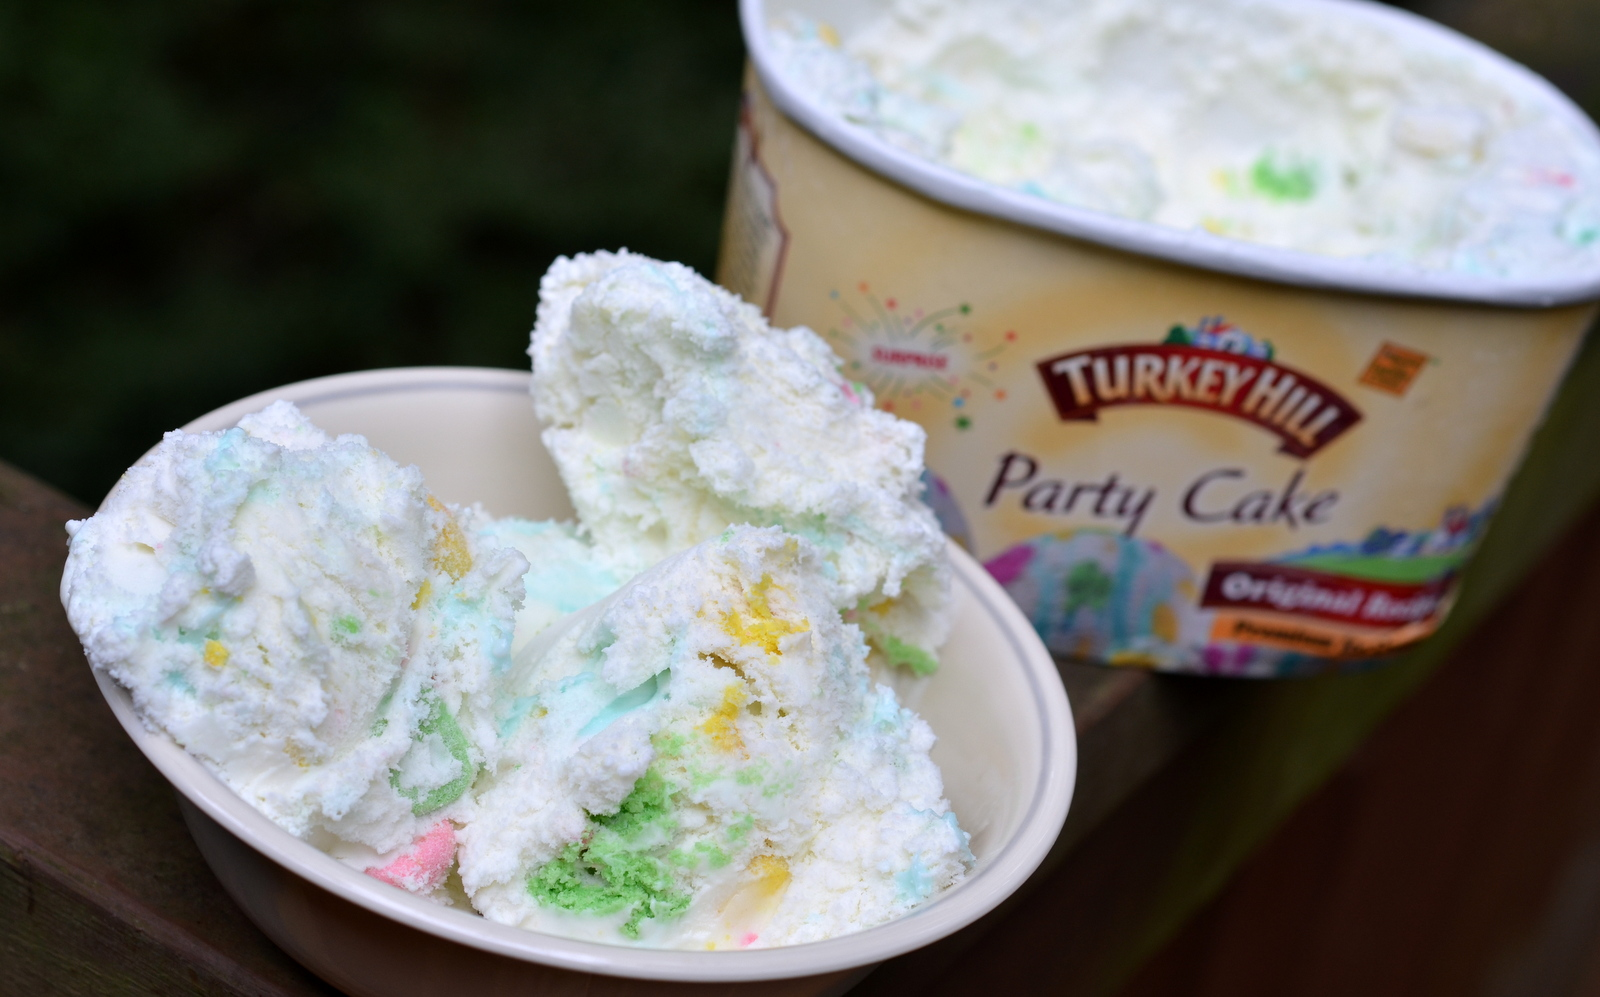 food and ice cream recipes REVIEW Turkey Hill Party Cake